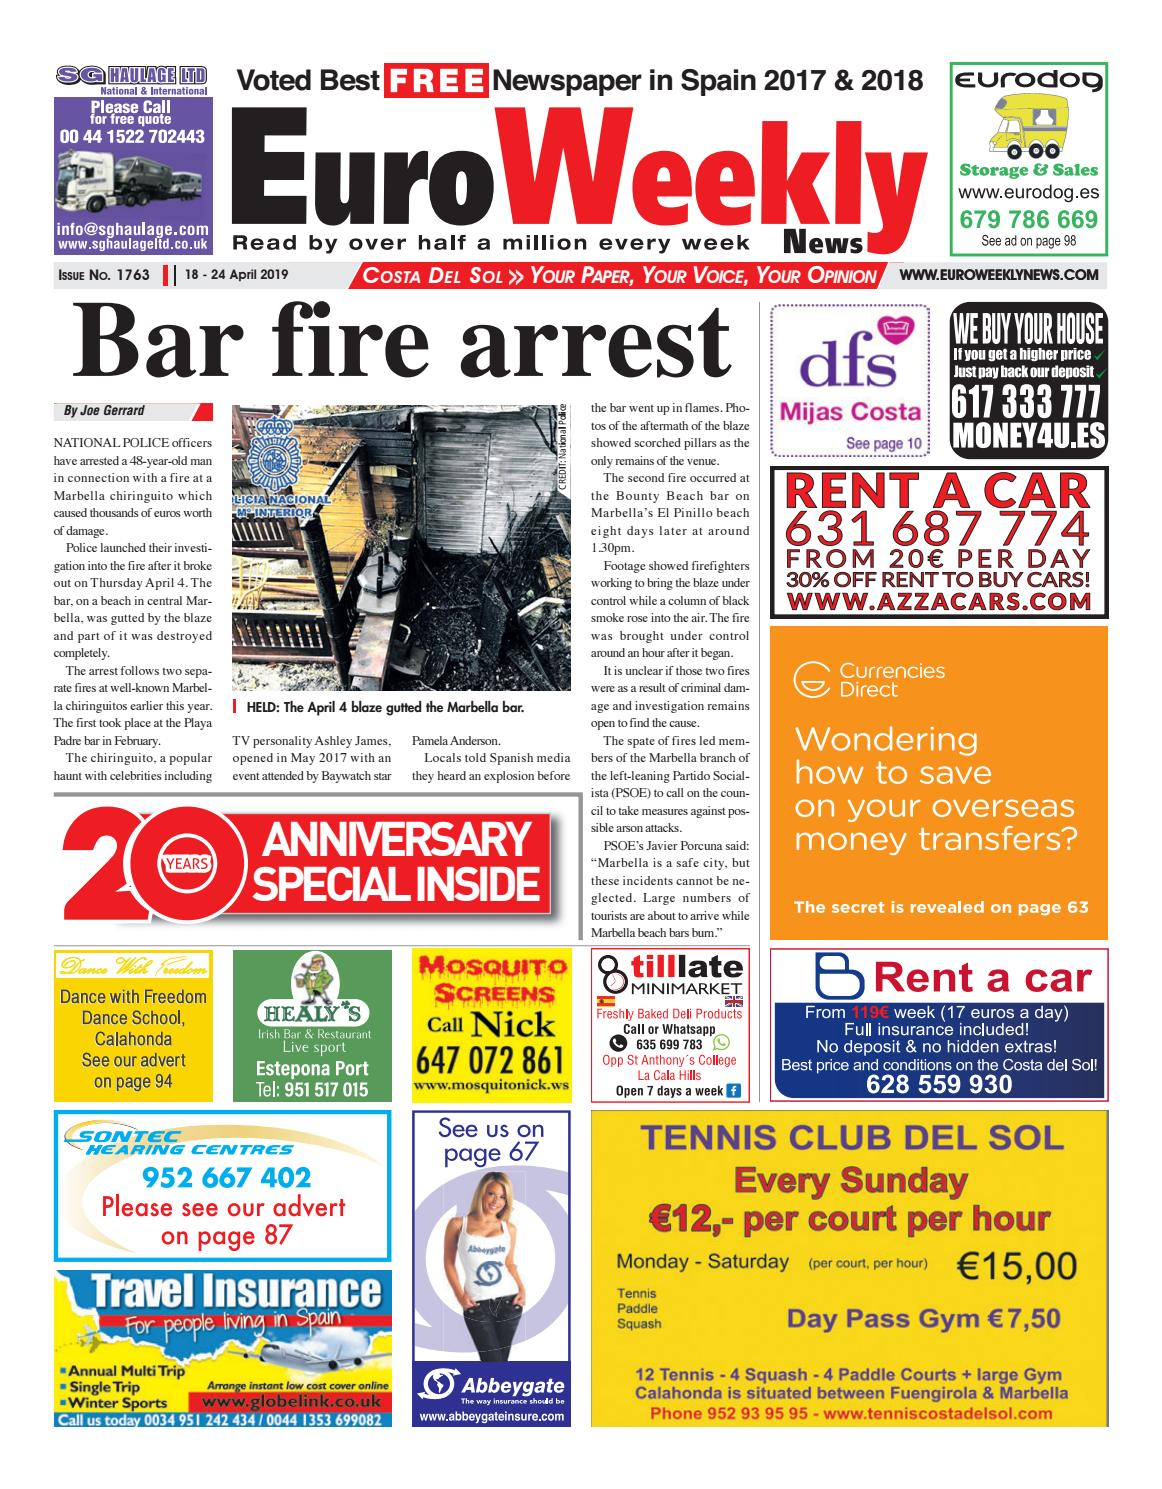 Euro Weekly News - Costa del Sol 18 - 24 April 2019 Issue 1763 by